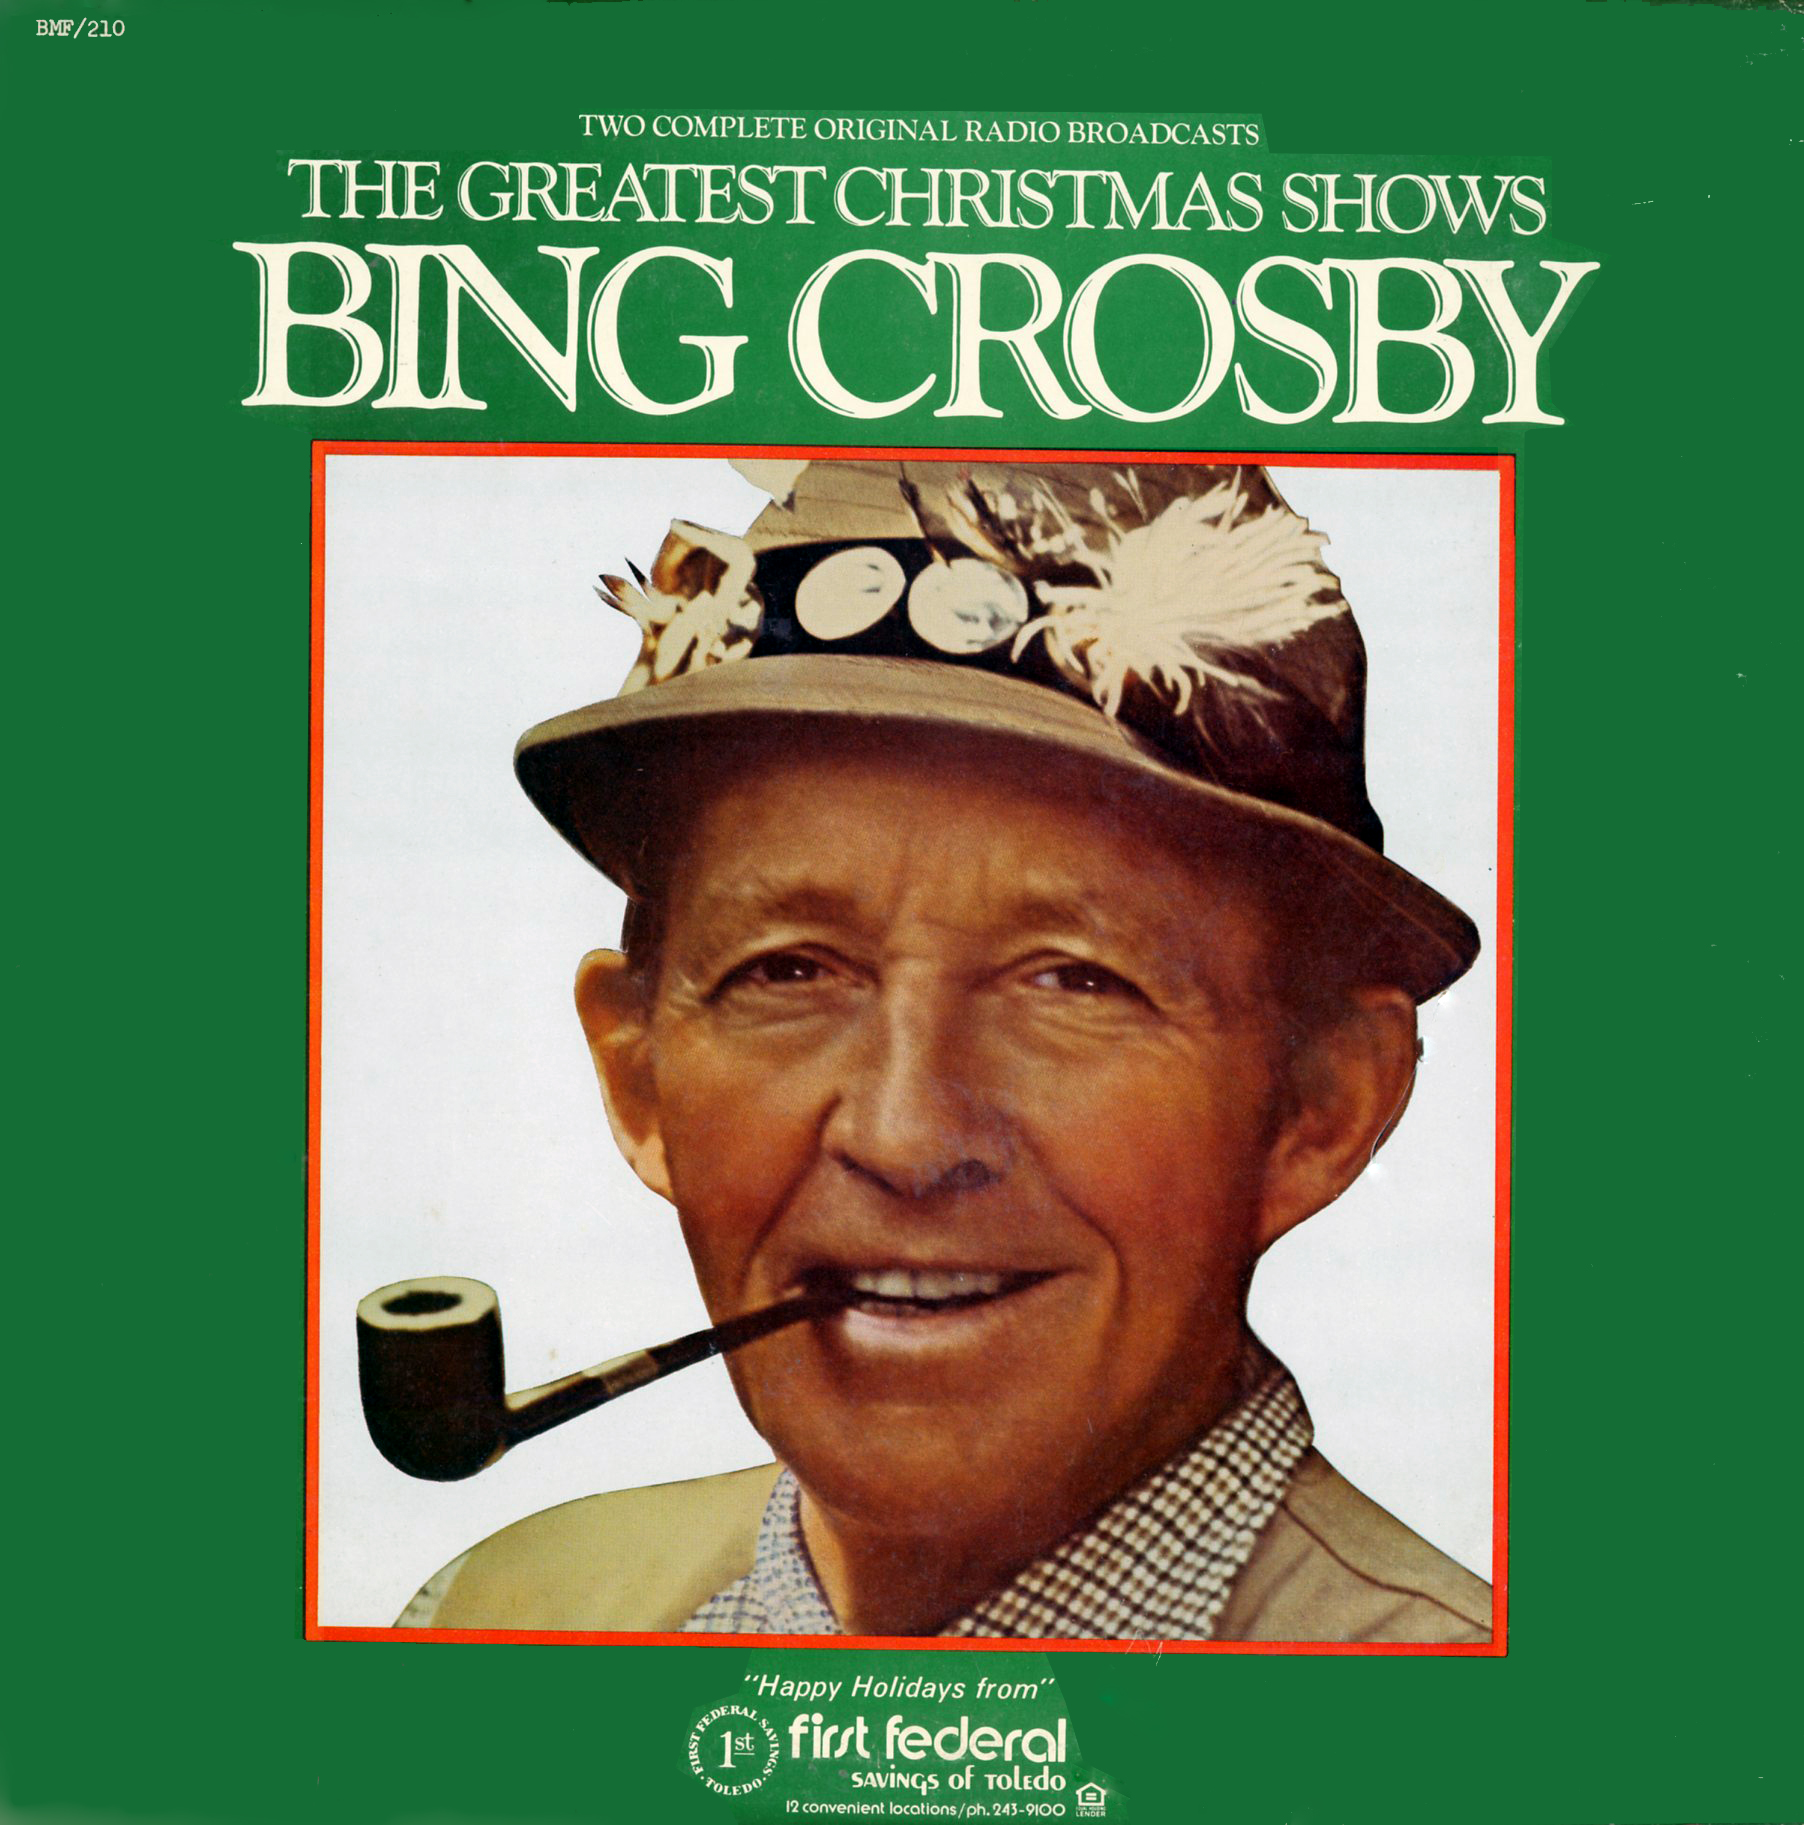 Bing Crosby Christmas.Album Cover Art Wednesday The Bing Crosby Christmas